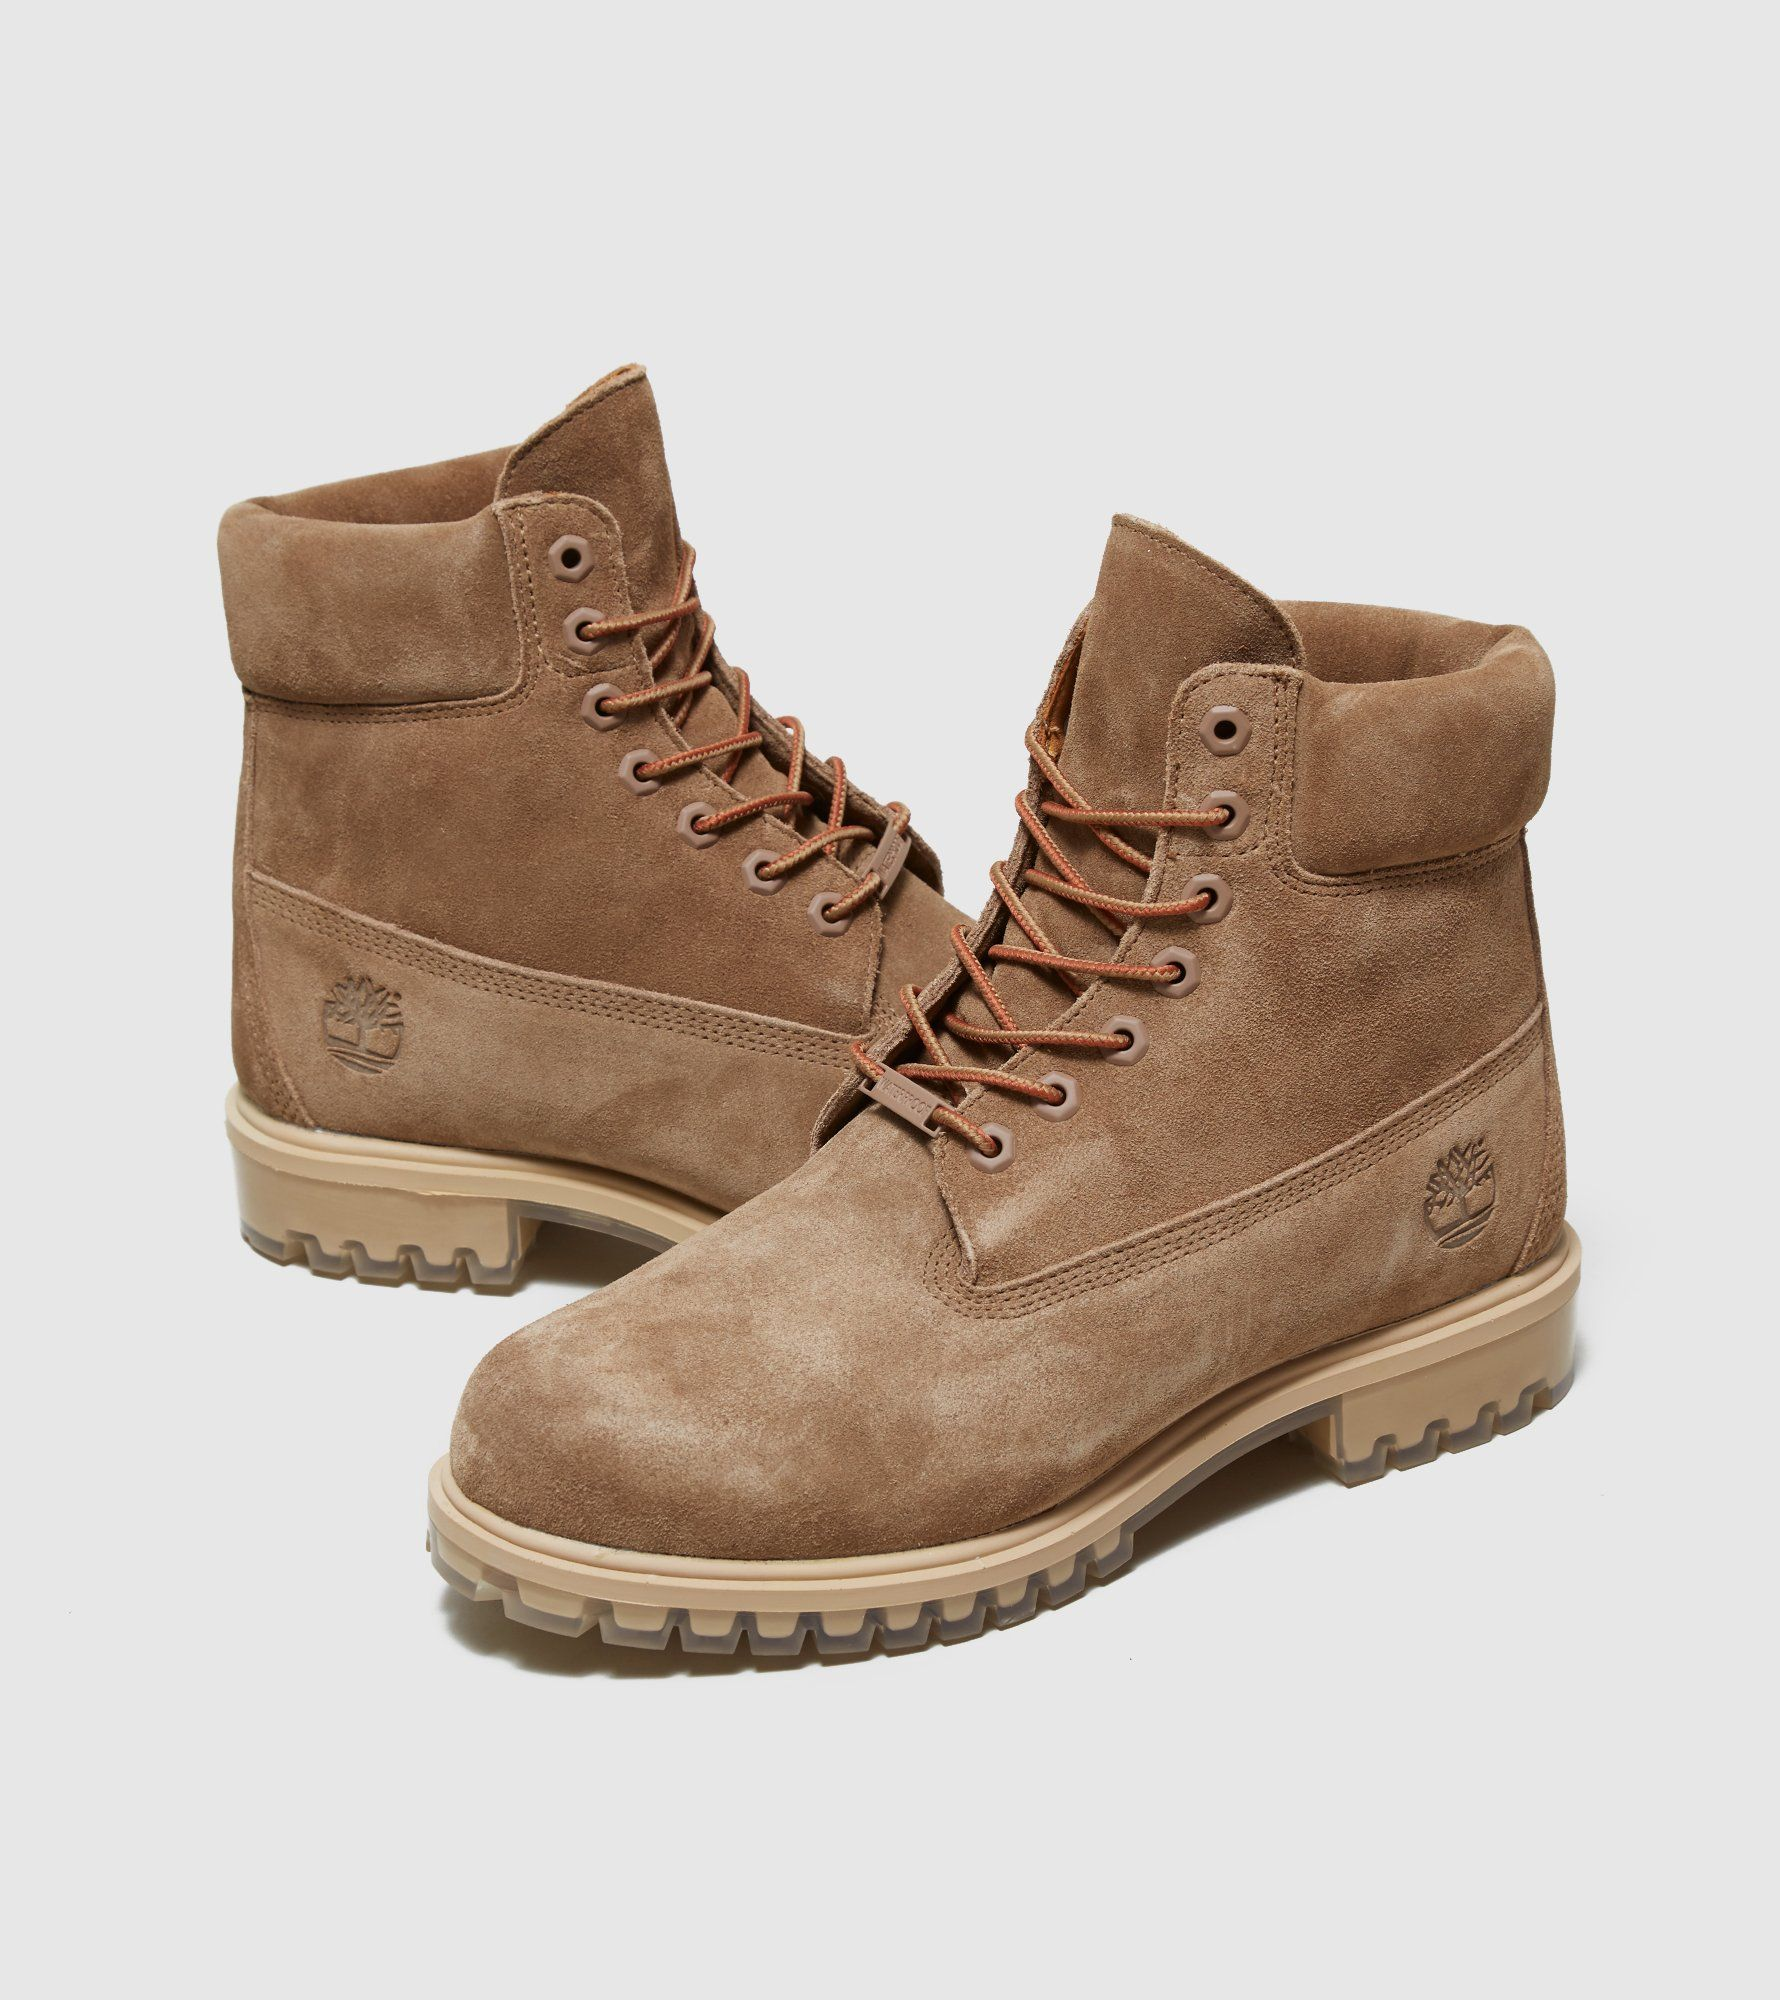 Timberland 6-Inch Boots